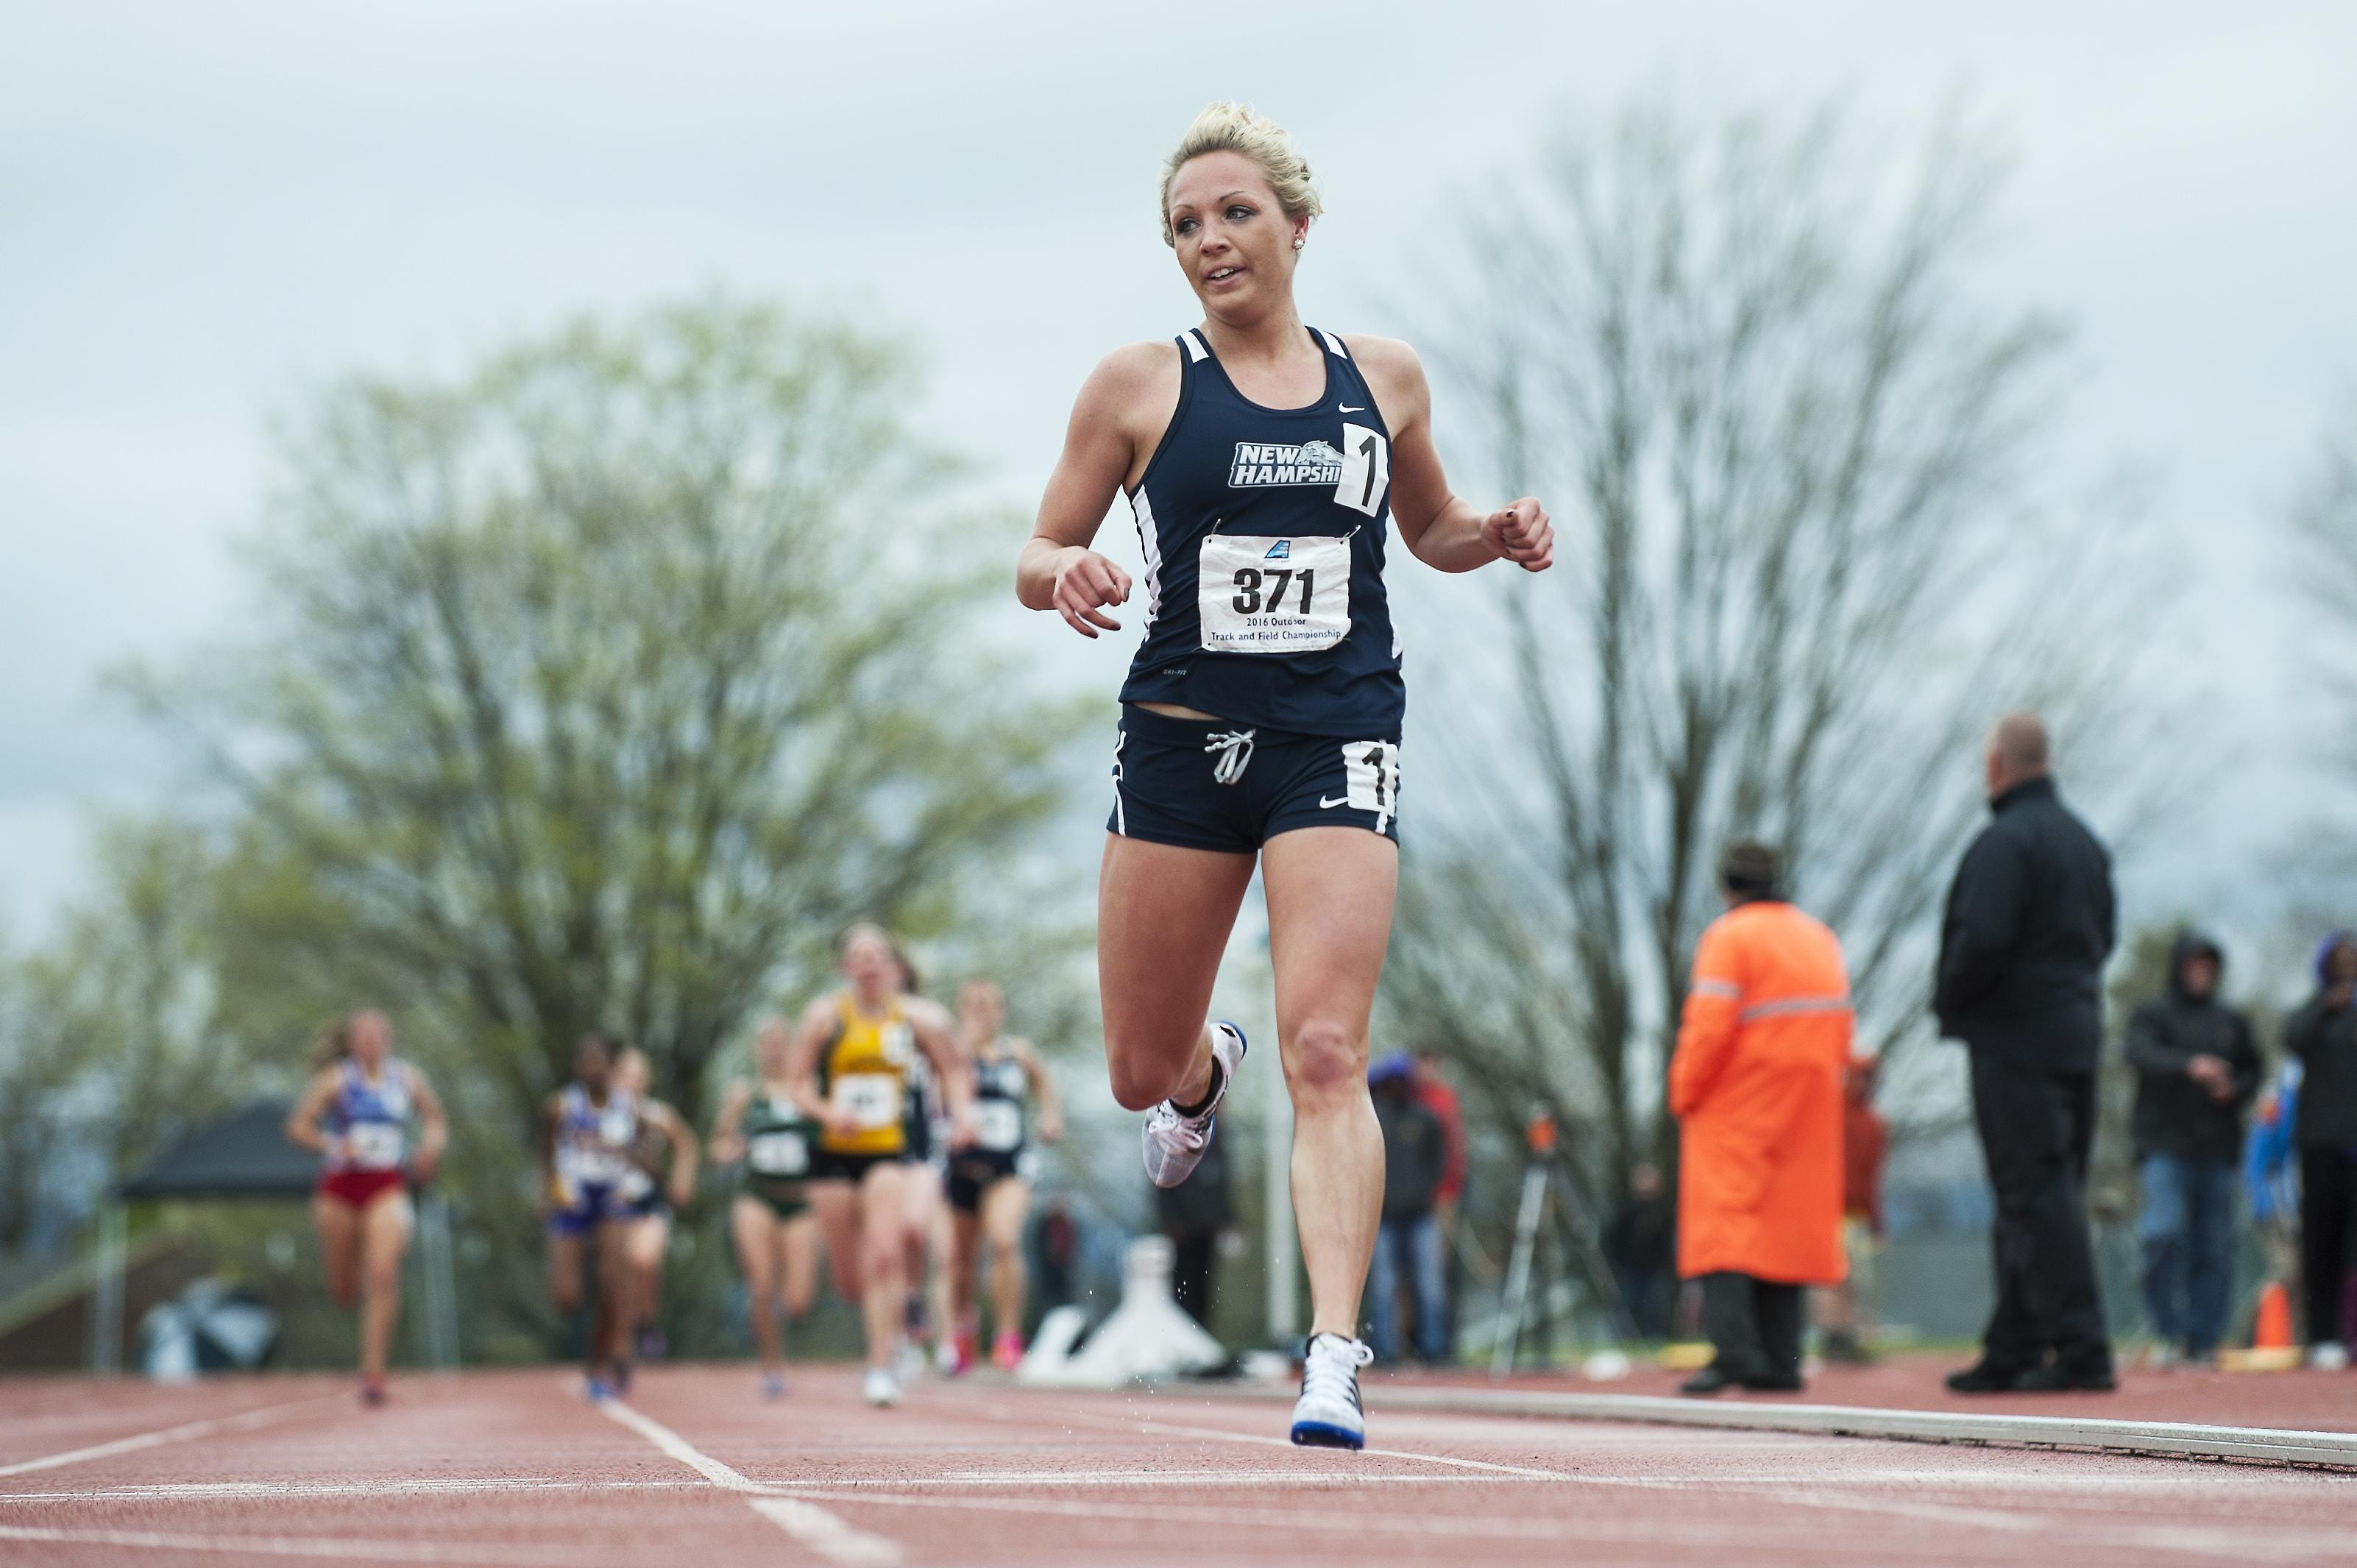 Vermont native and University of New Hampshire redshirt sophomore Elle Purrier raced to third in the 3,000-meter steeplechase at the NCAA track and field championships Saturday.